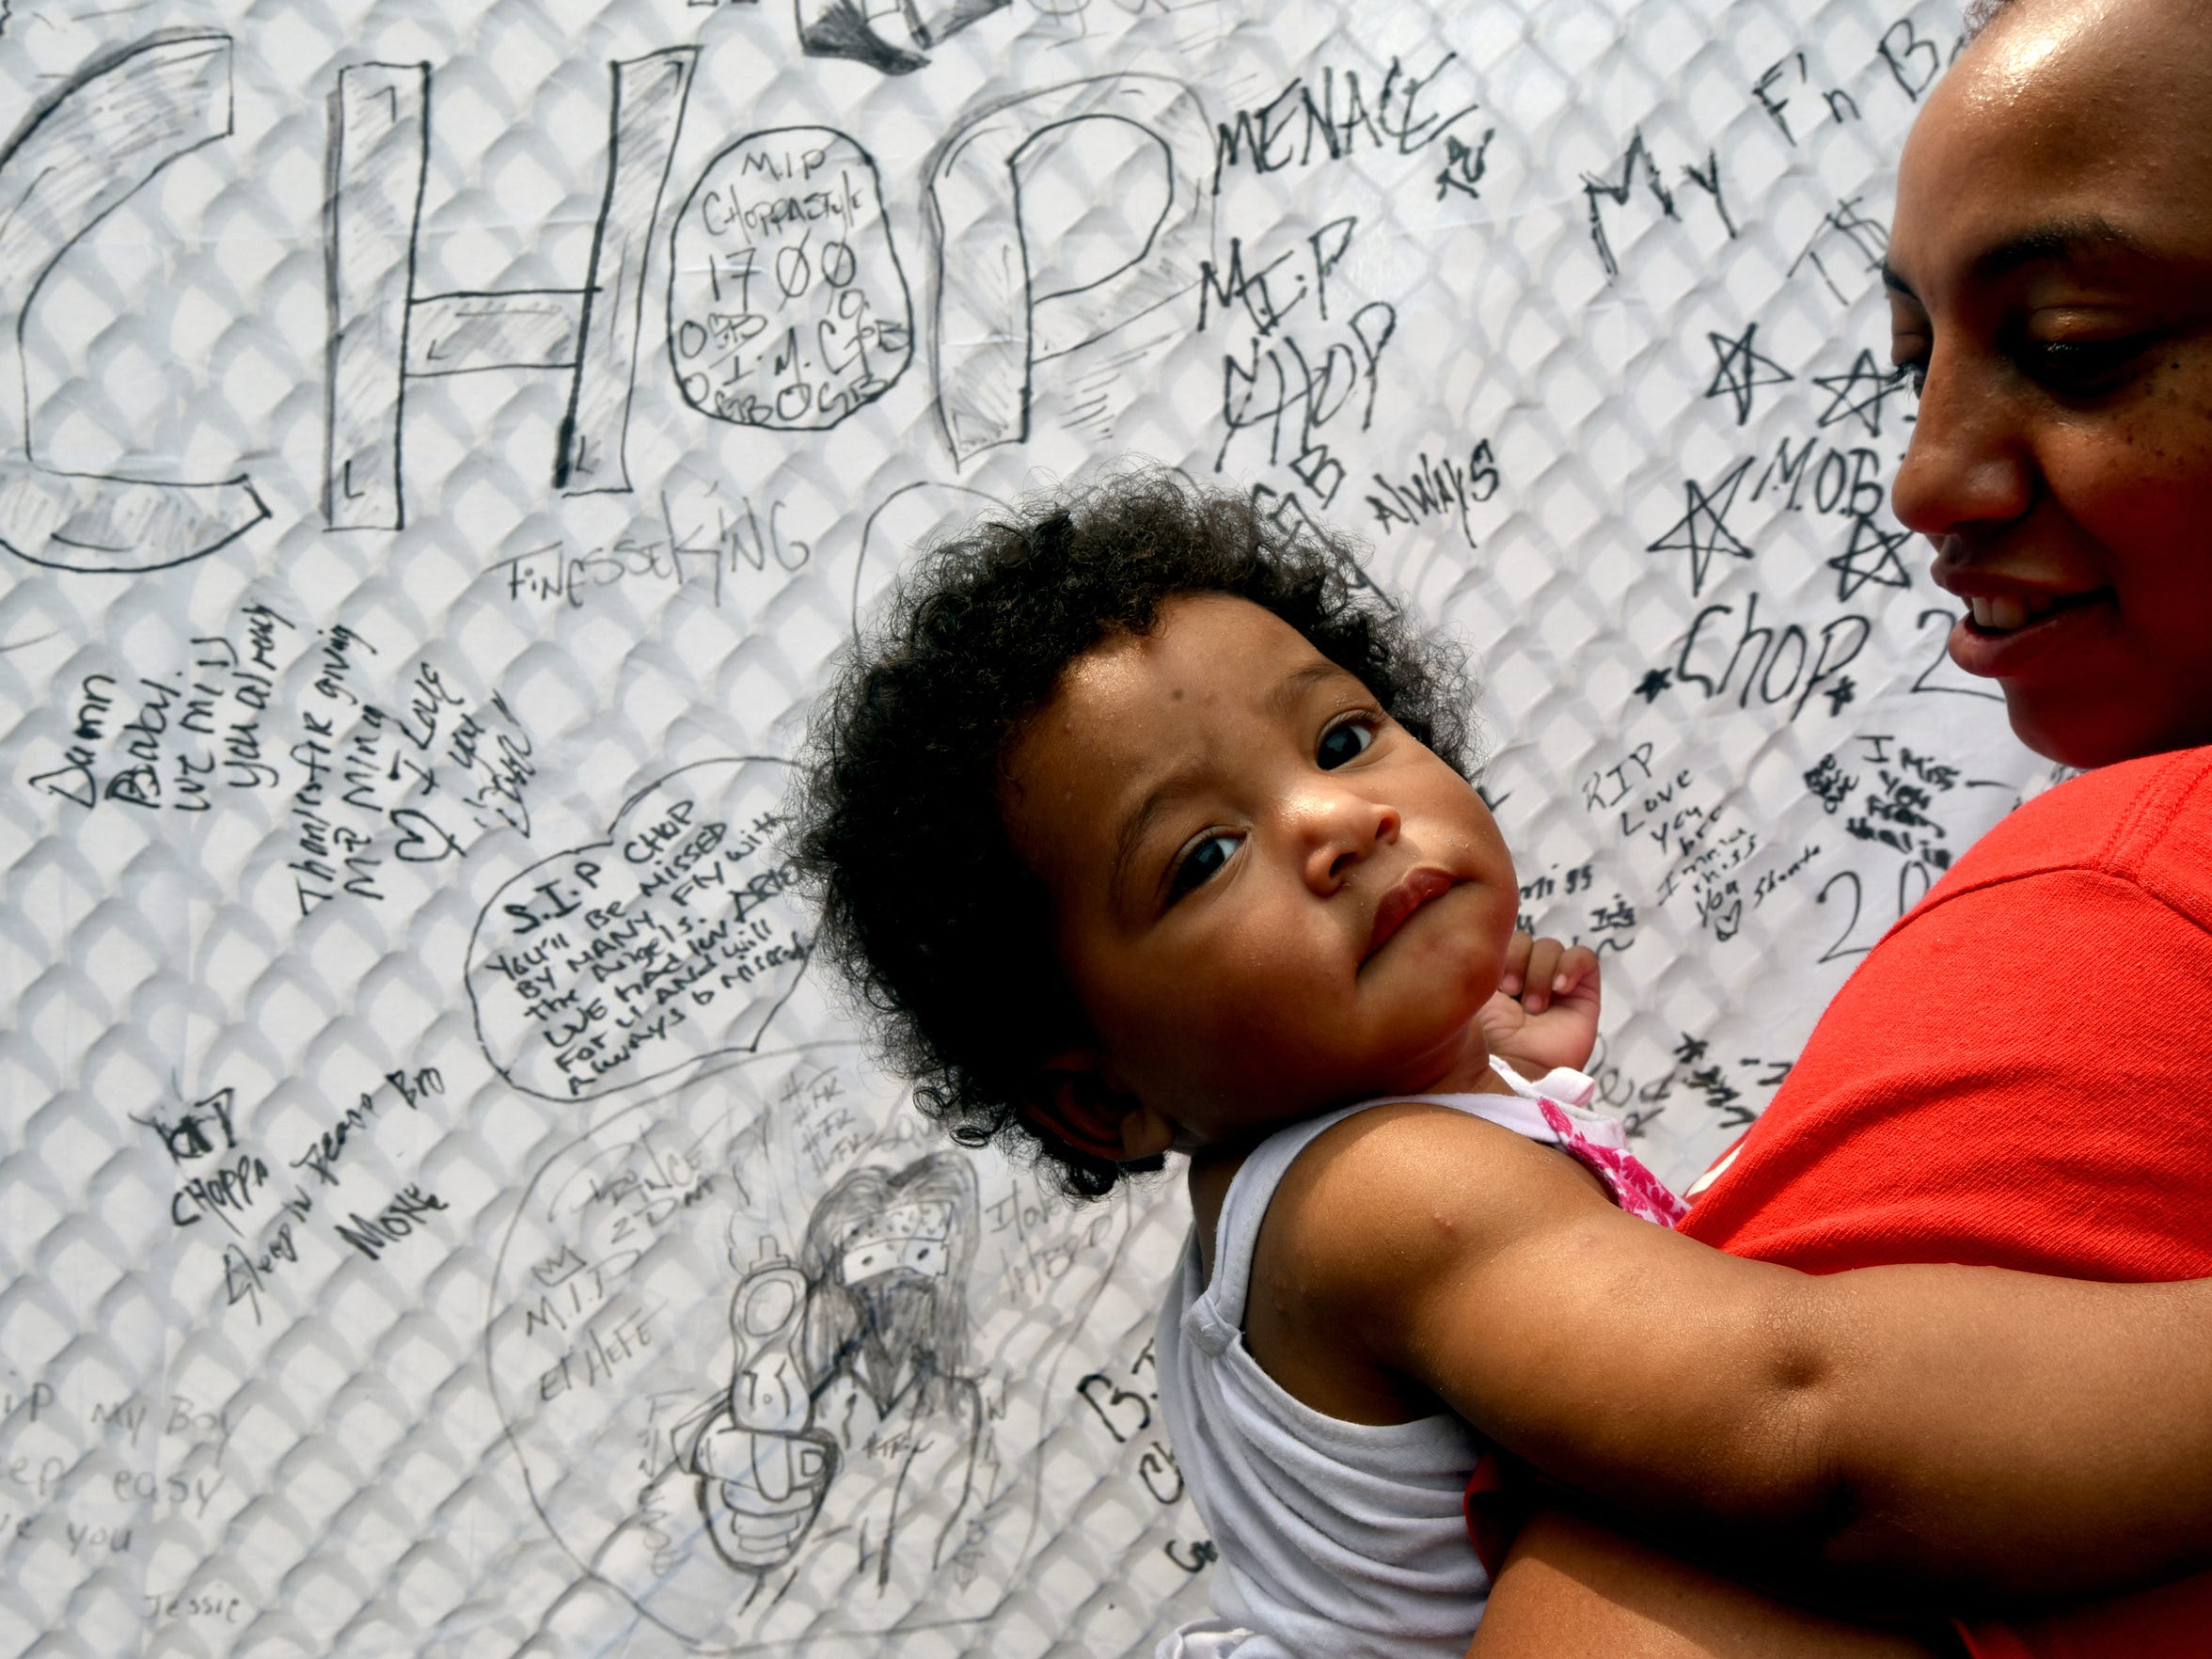 In North Camden, Dana Lorenzo holds daughter Zhane in front of a memorial sheet for the child's father, Johnathon Simmons, after the 19-year-old was shot to death in August 2015. Now, Lorenzo uses Facebook to warn teens to stay away from gang life.